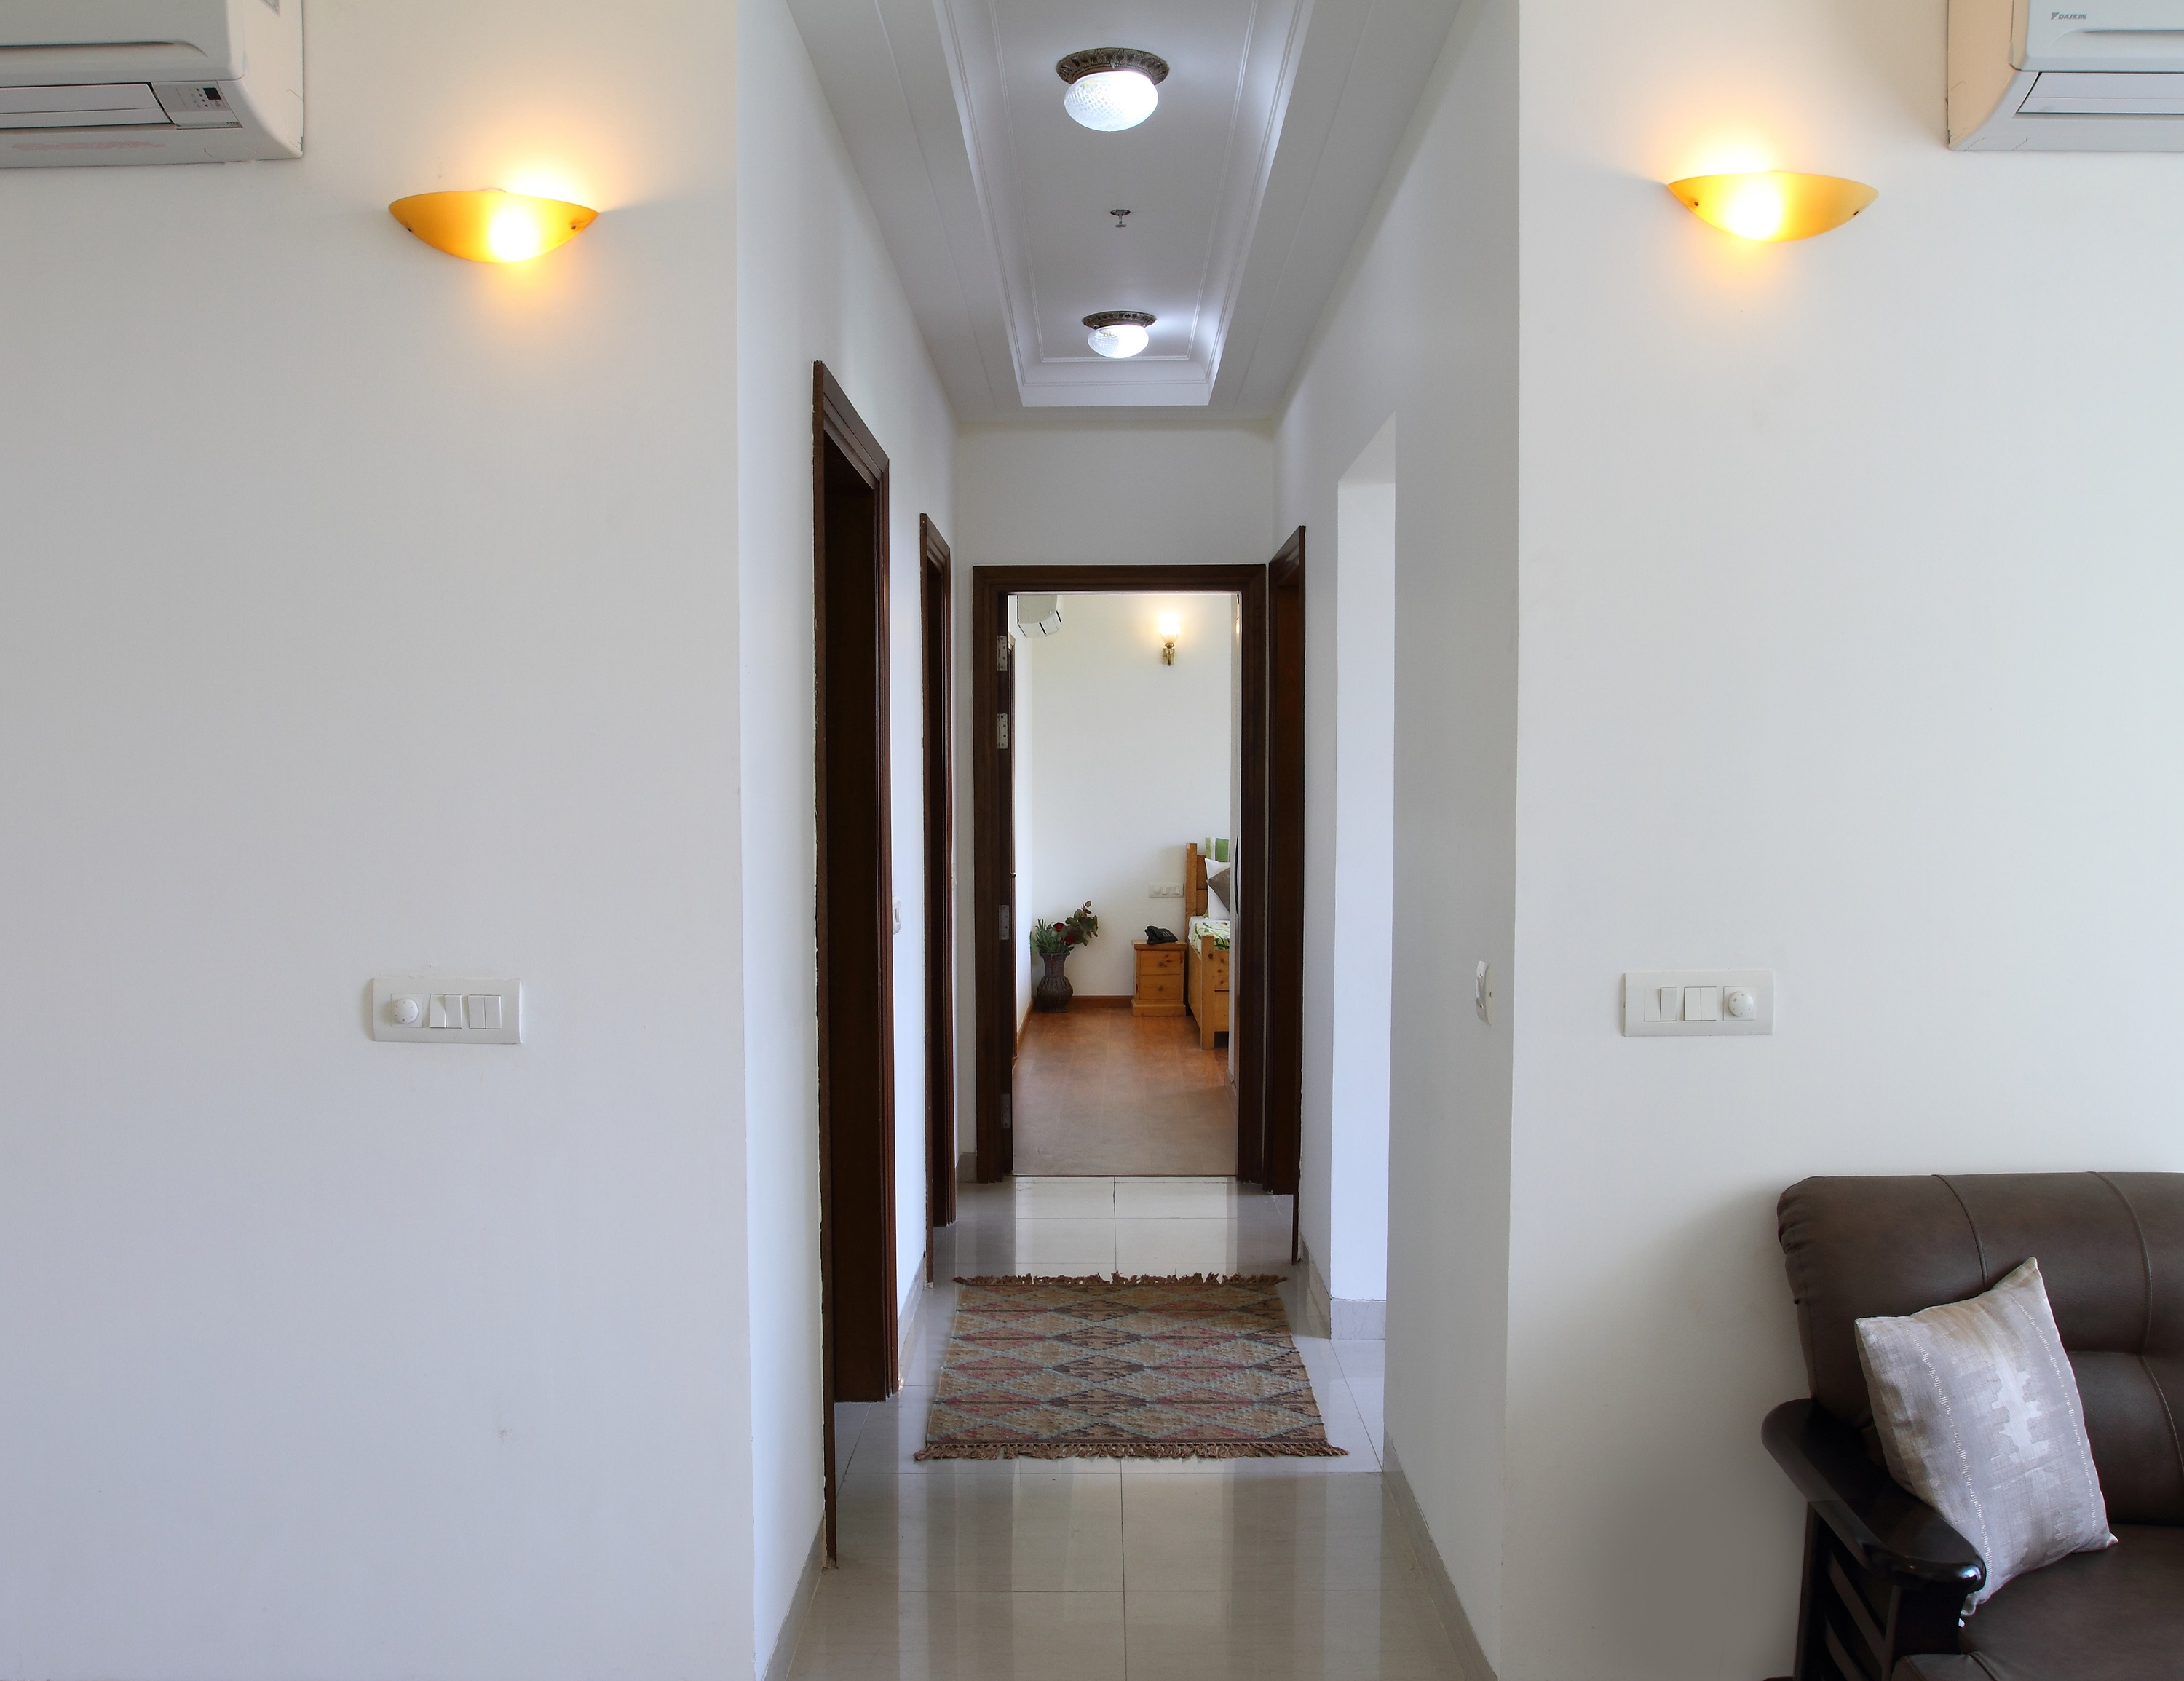 Perch Central Park Sona Road, 2BHK Room View